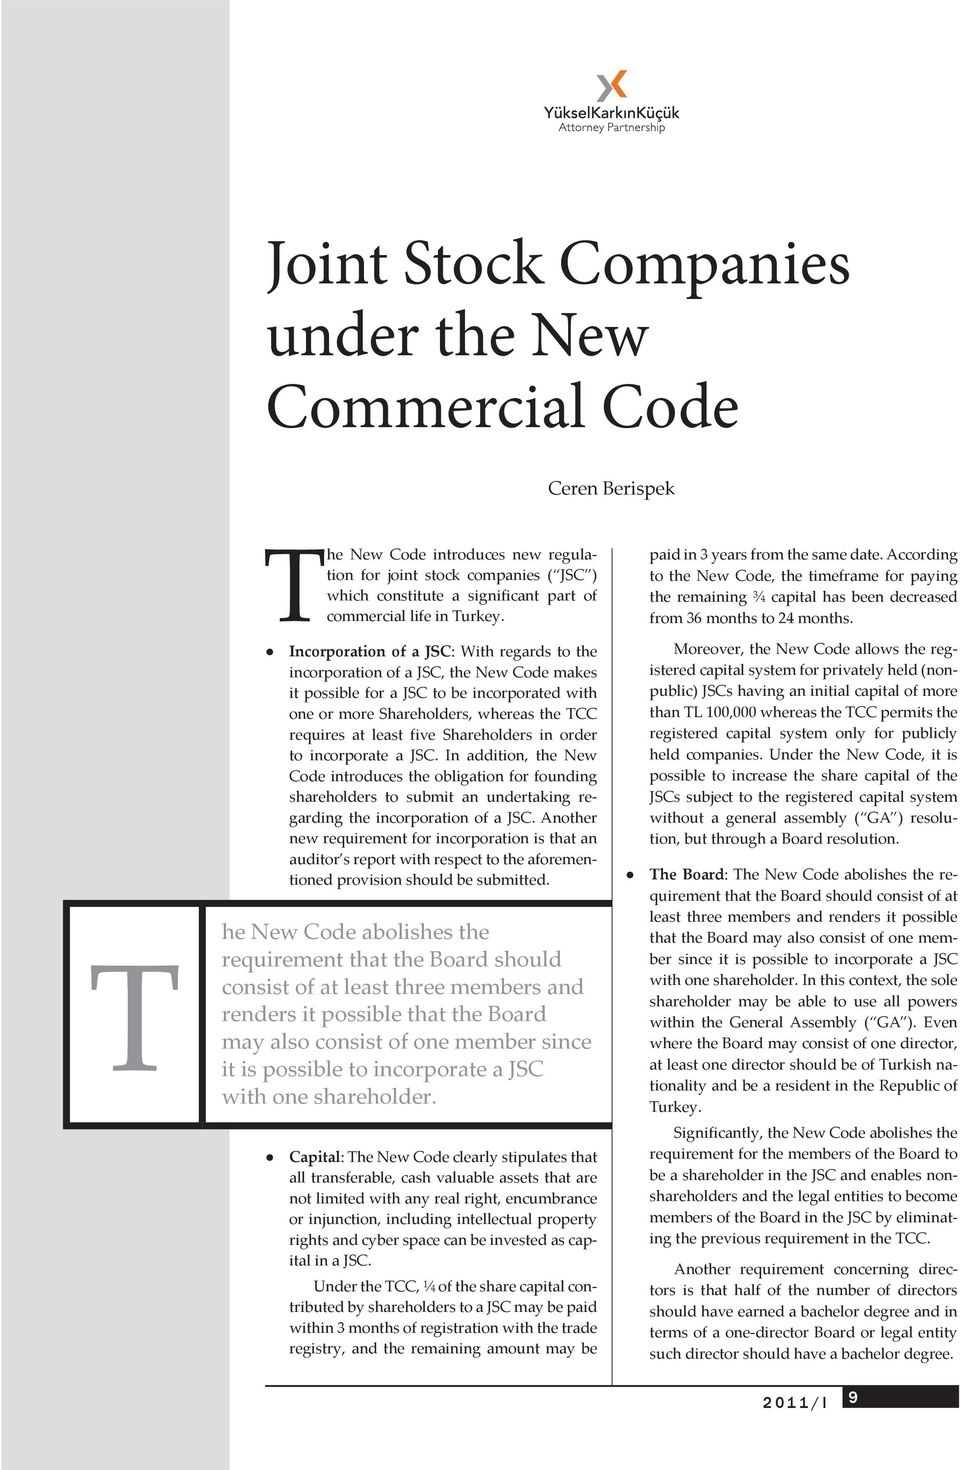 T he Incorporation of a JSC: With regards to the incorporation of a JSC, the New Code makes it possible for a JSC to be incorporated with one or more Shareholders, whereas the TCC requires at least